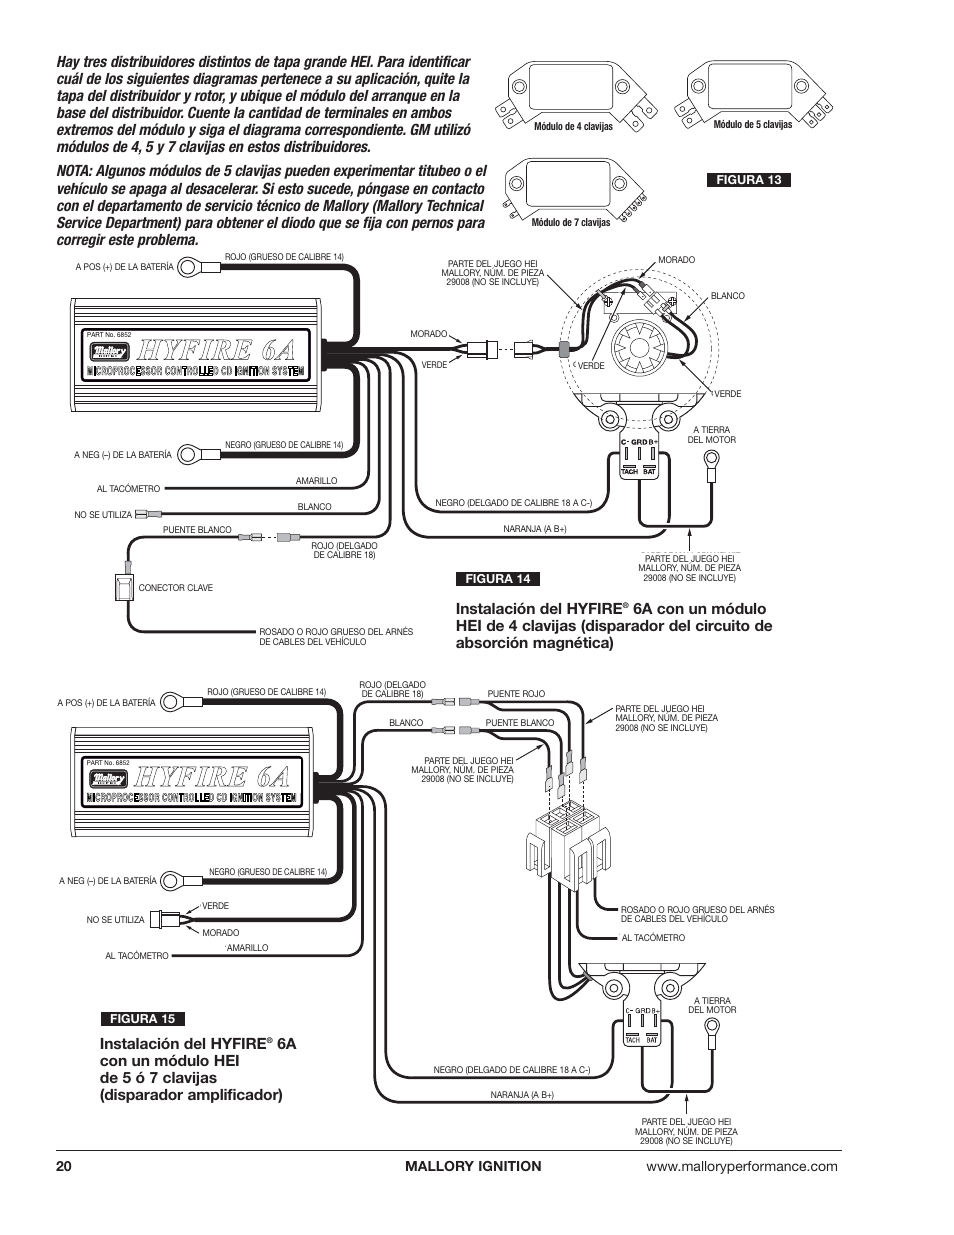 Mallory 685 Ignition Wiring Diagram - Wiring Diagram G11 on pro comp distributor wiring diagram, msd coil wiring diagram, mallory distributor wiring, msd ignition wiring diagram, mallory high fire wiring-diagram,